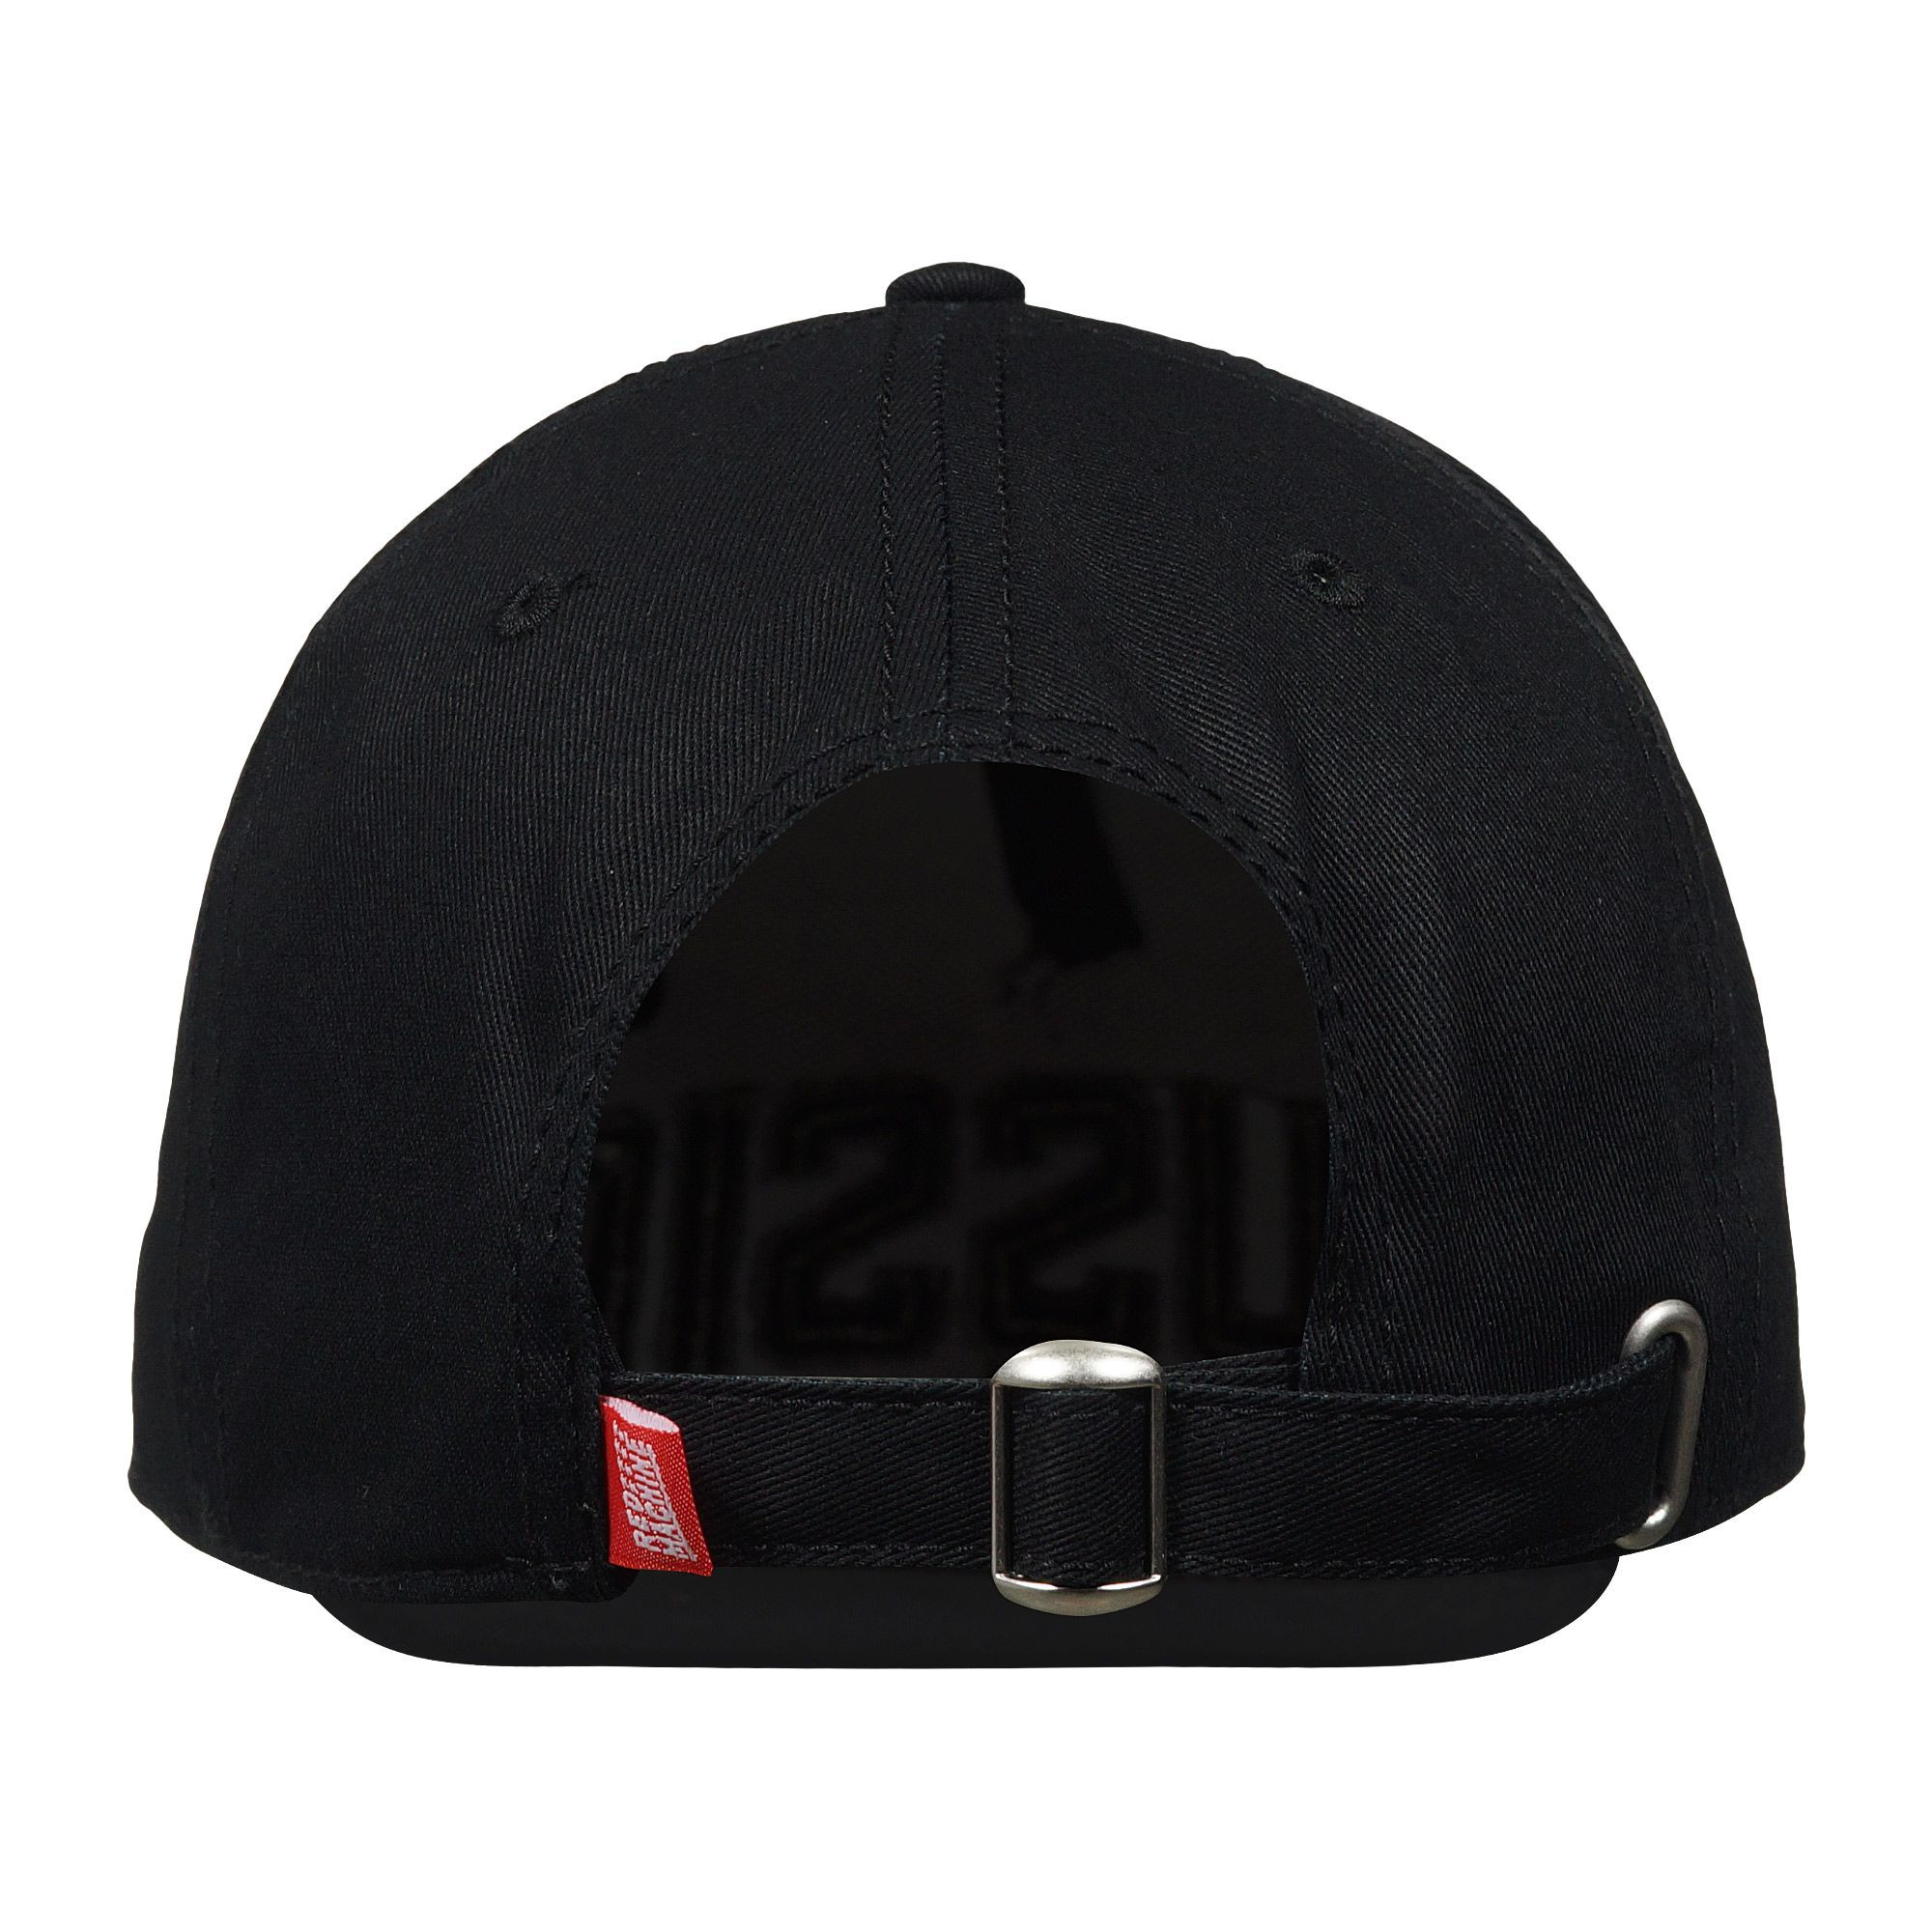 "Бейсболка черная snapback ""Russia Hockey Brotherhood"""